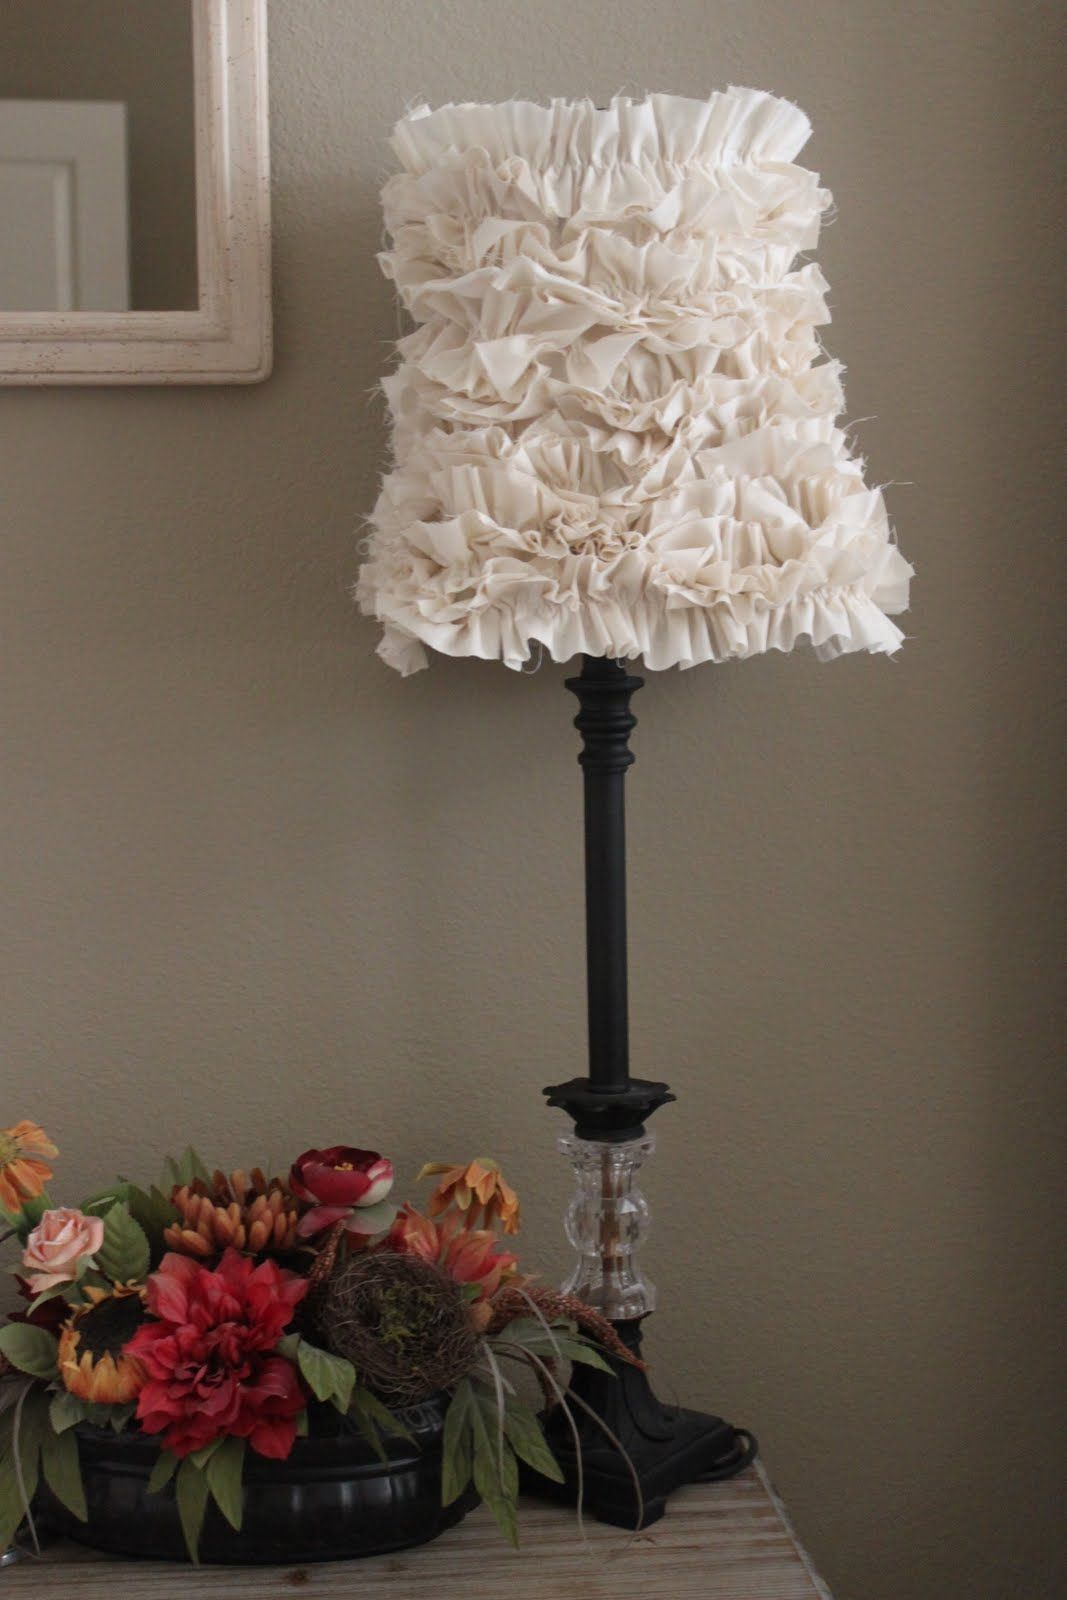 Crafty texas girls crafty how to ruffled lamp shade decor crafty texas girls crafty how to ruffled lamp shade aloadofball Image collections